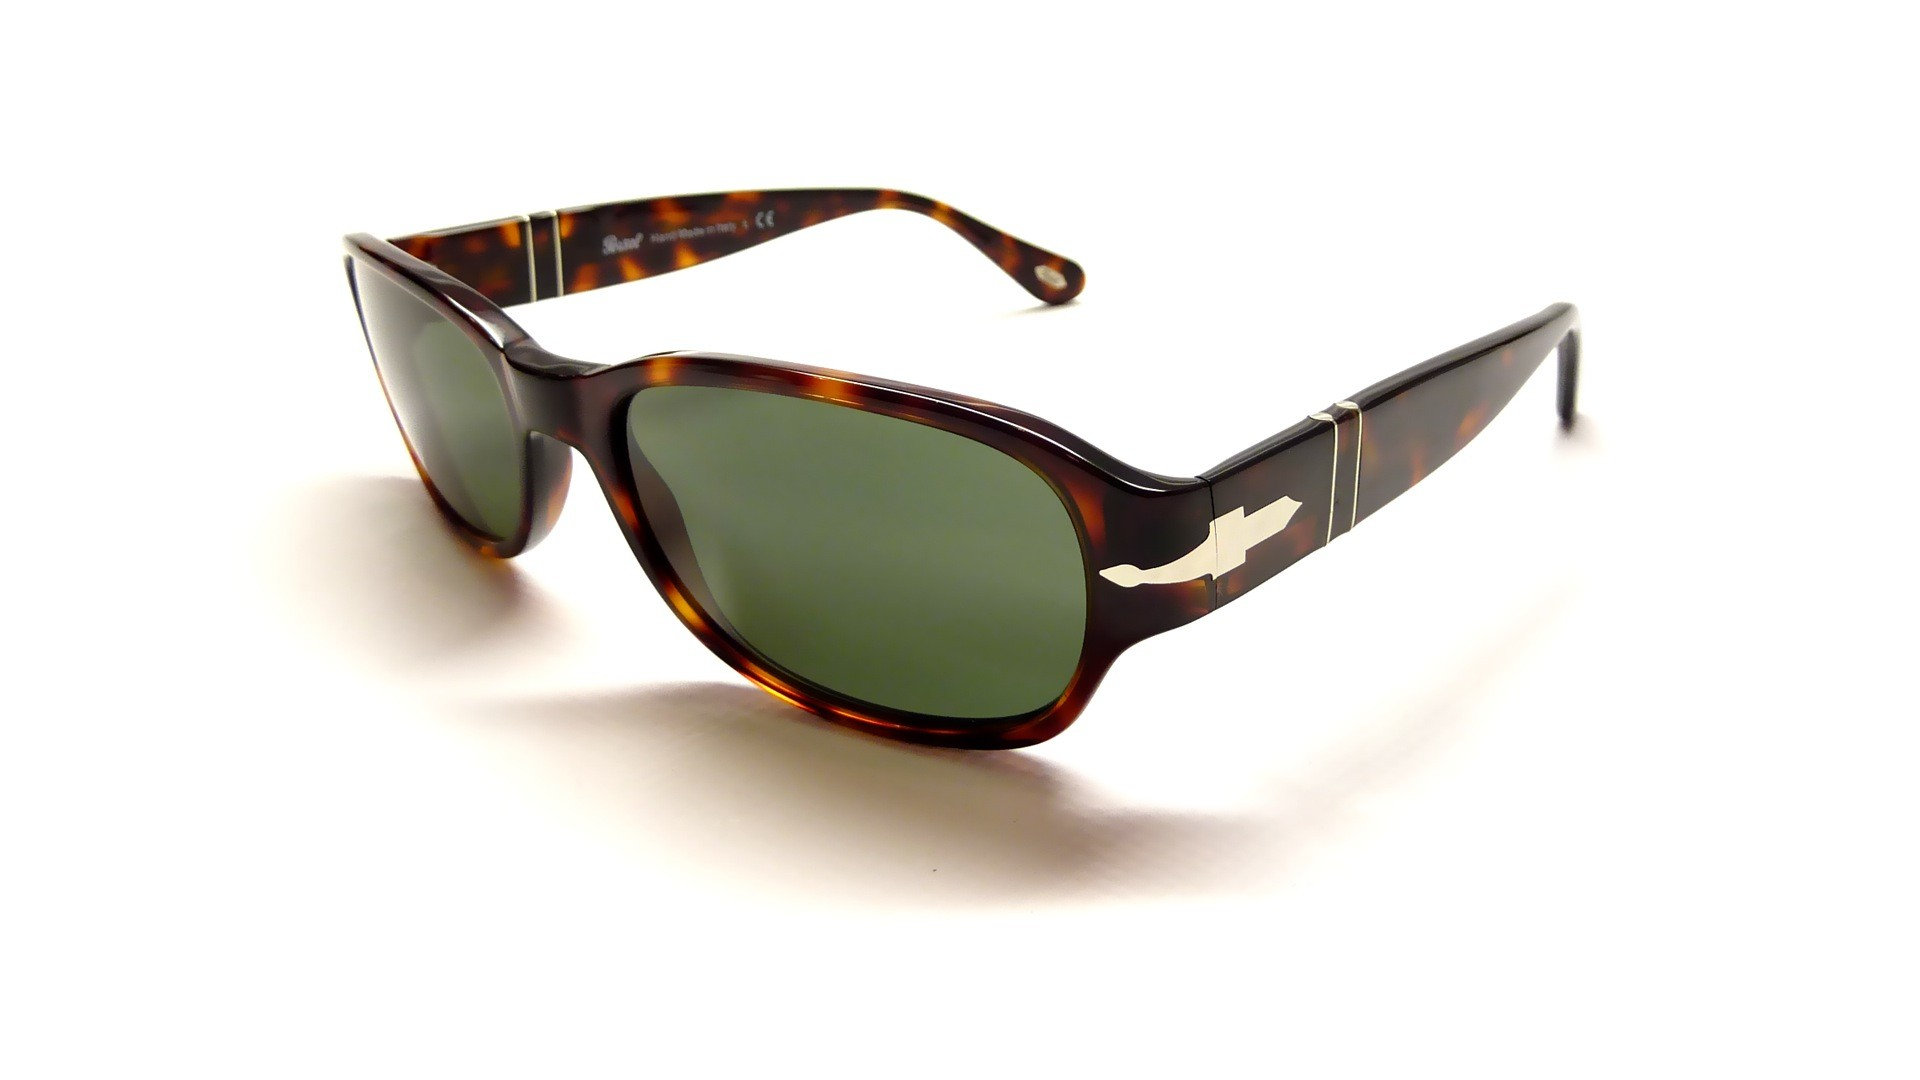 10427fedc98 Persol Photochromic Lens Review